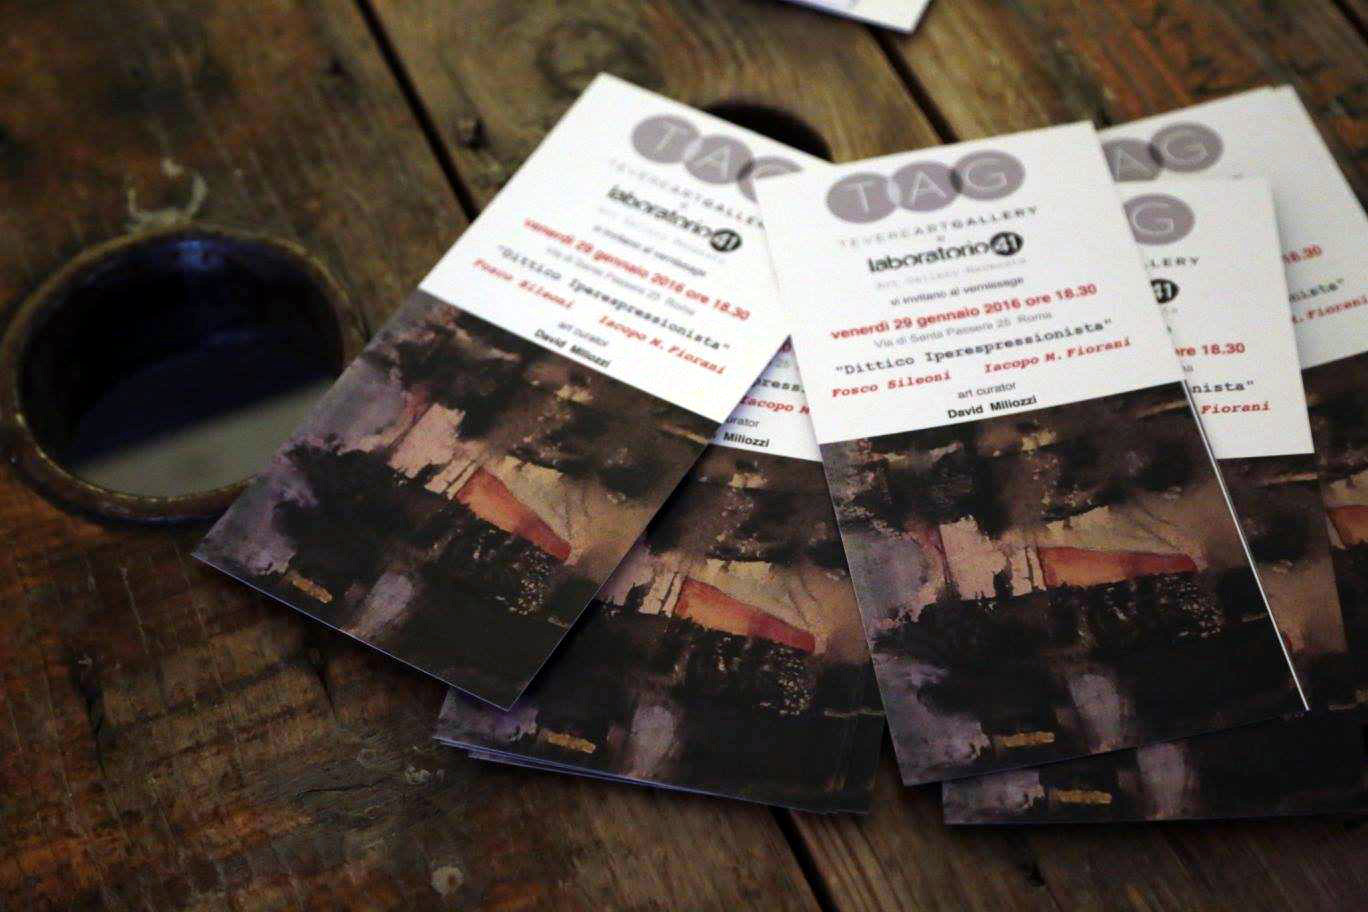 Tevere Art Gallery - Flyers